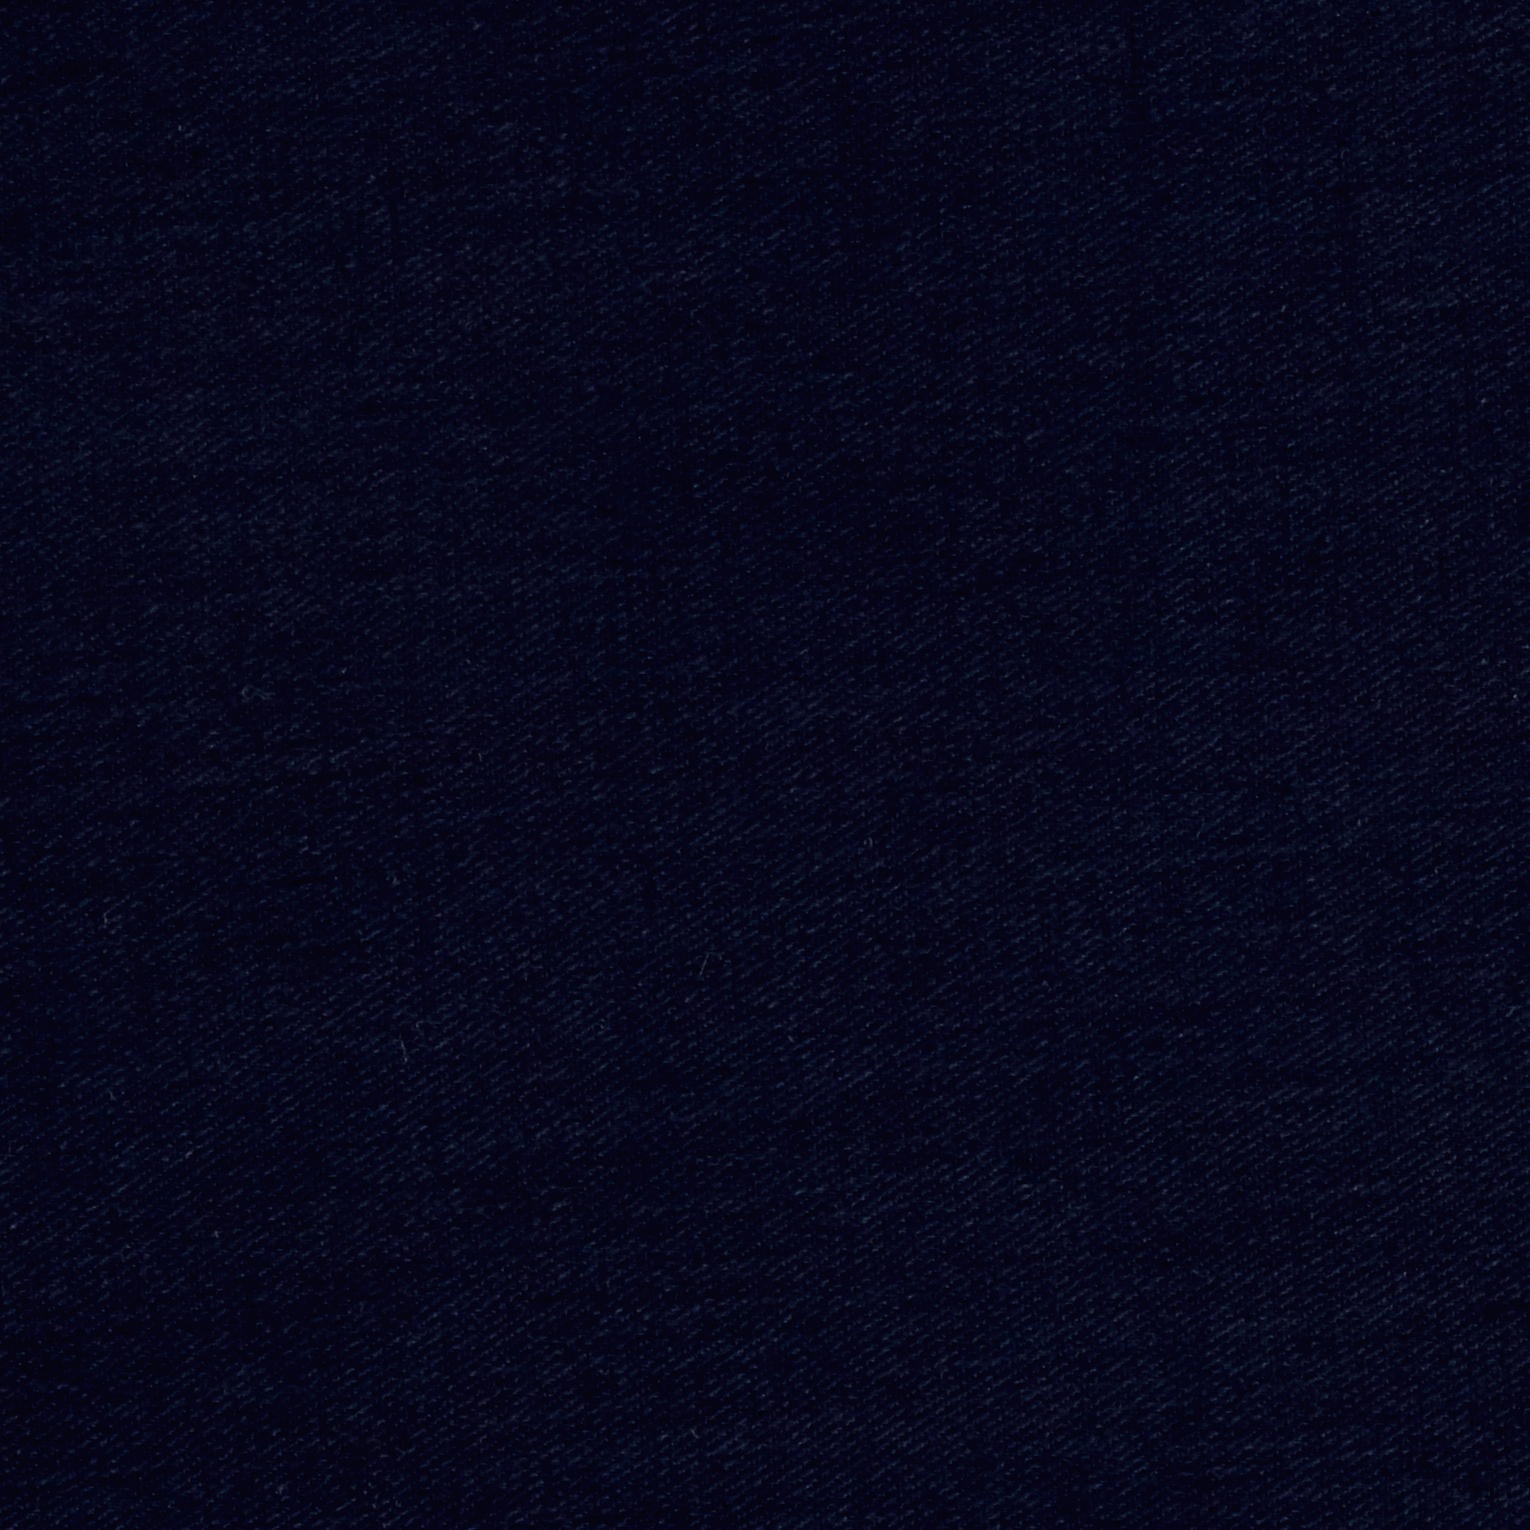 Polyester/Cotton Twill Navy Fabric by Textile Creations in USA